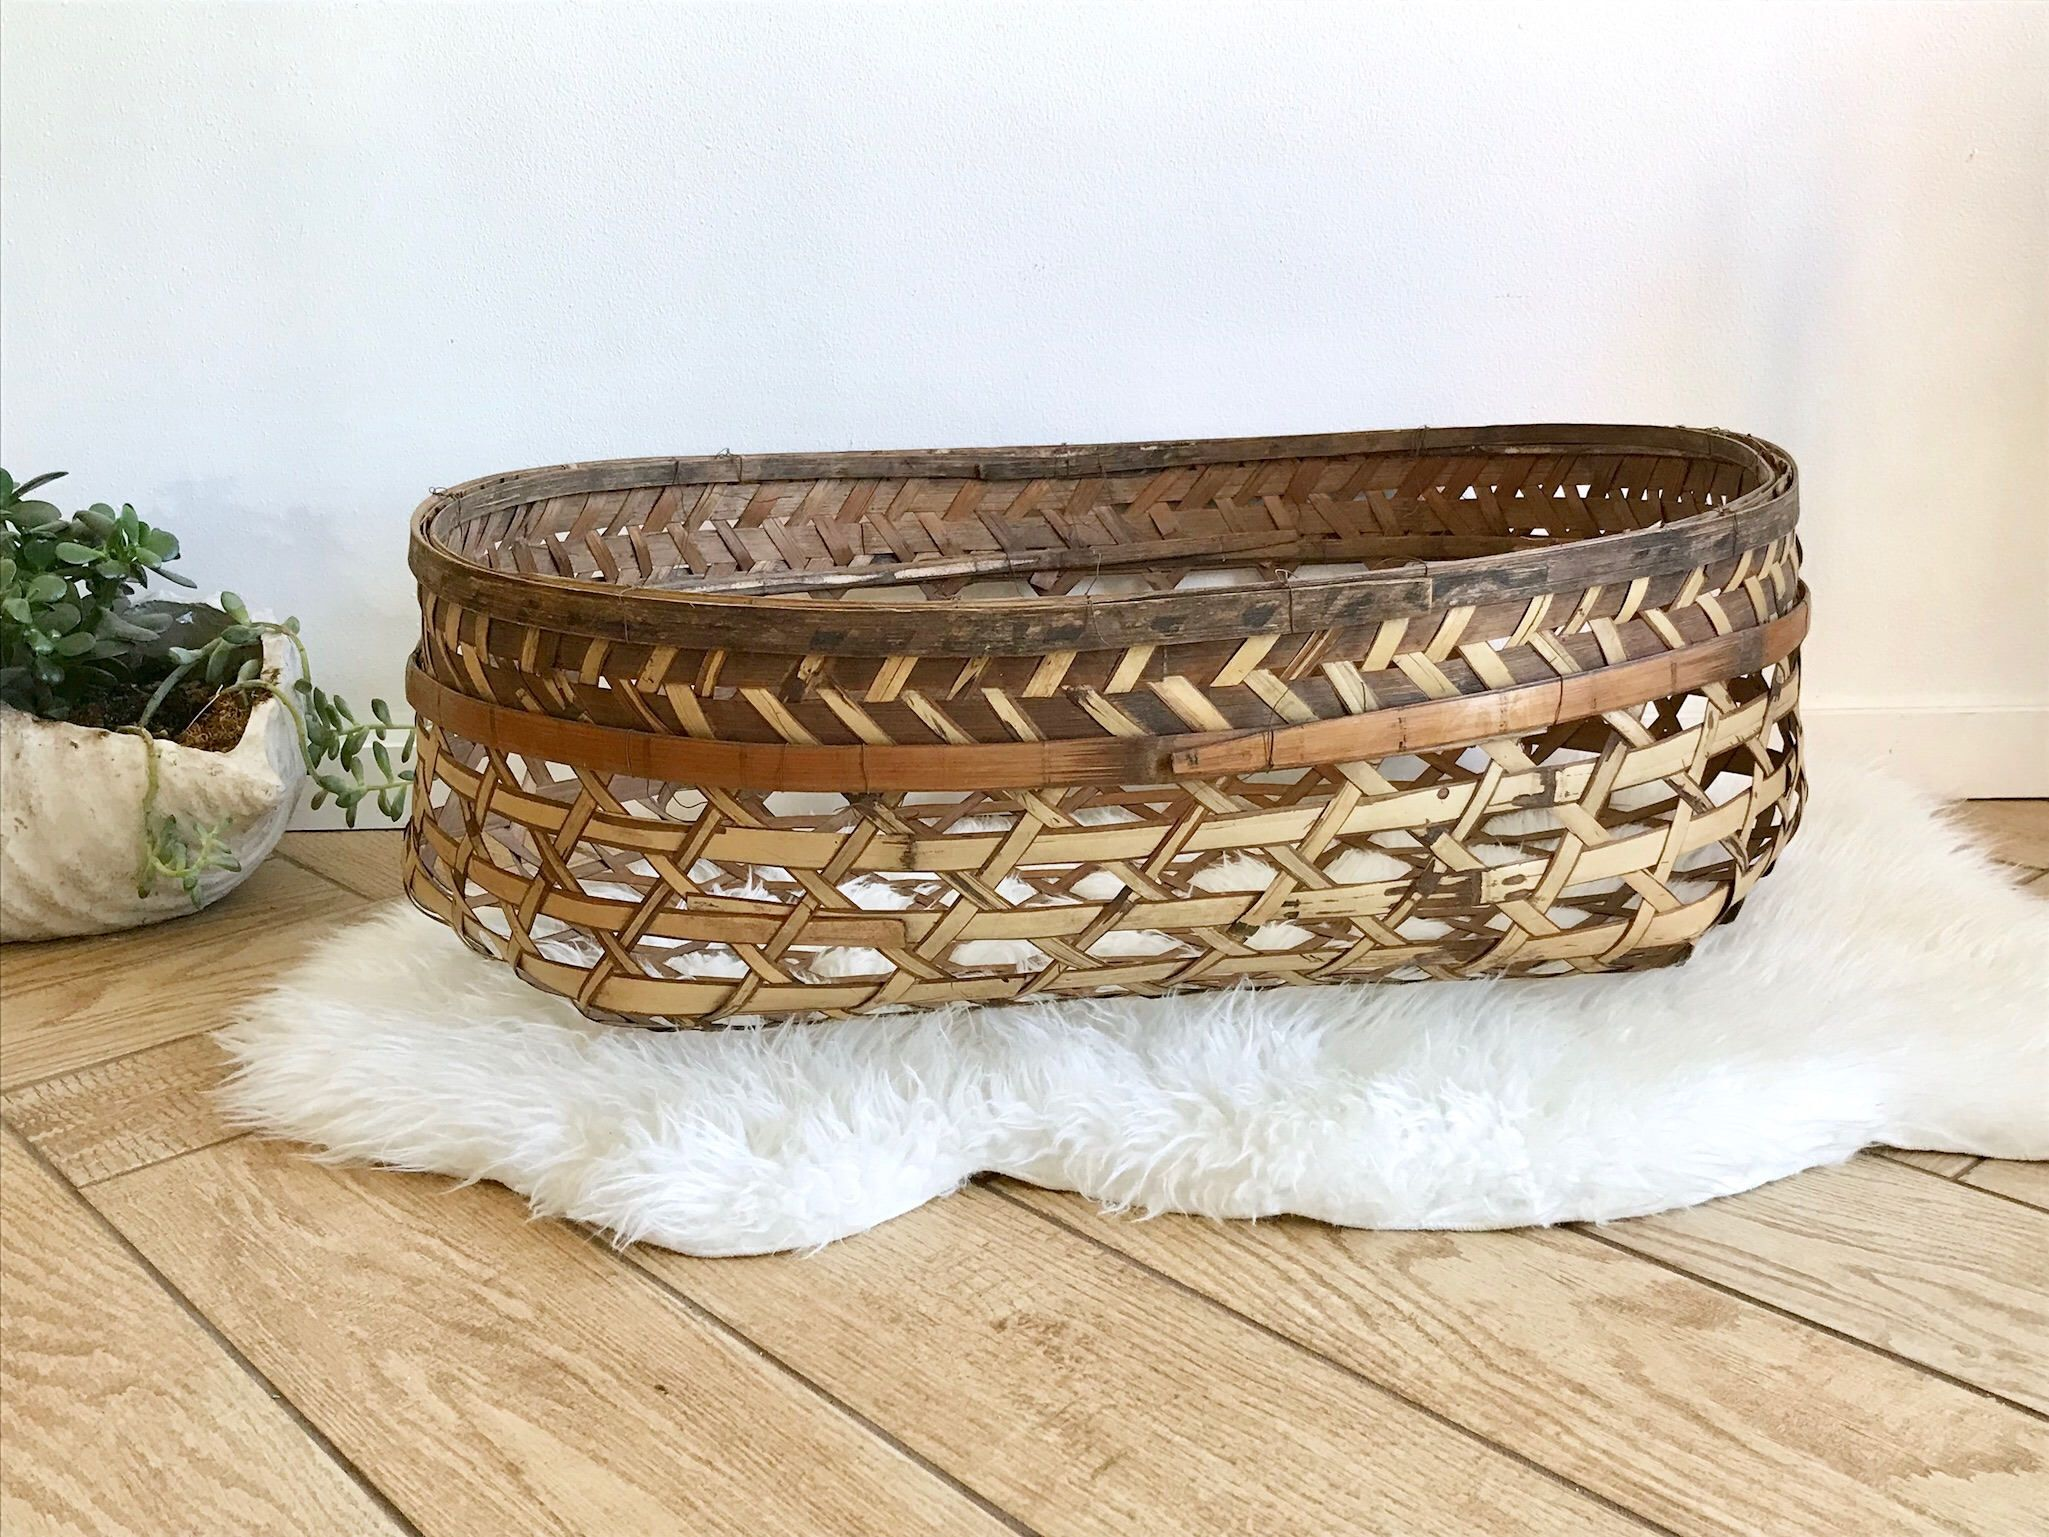 Rare Oversized Basket  Very Large Weave Woven Bamboo Wicker